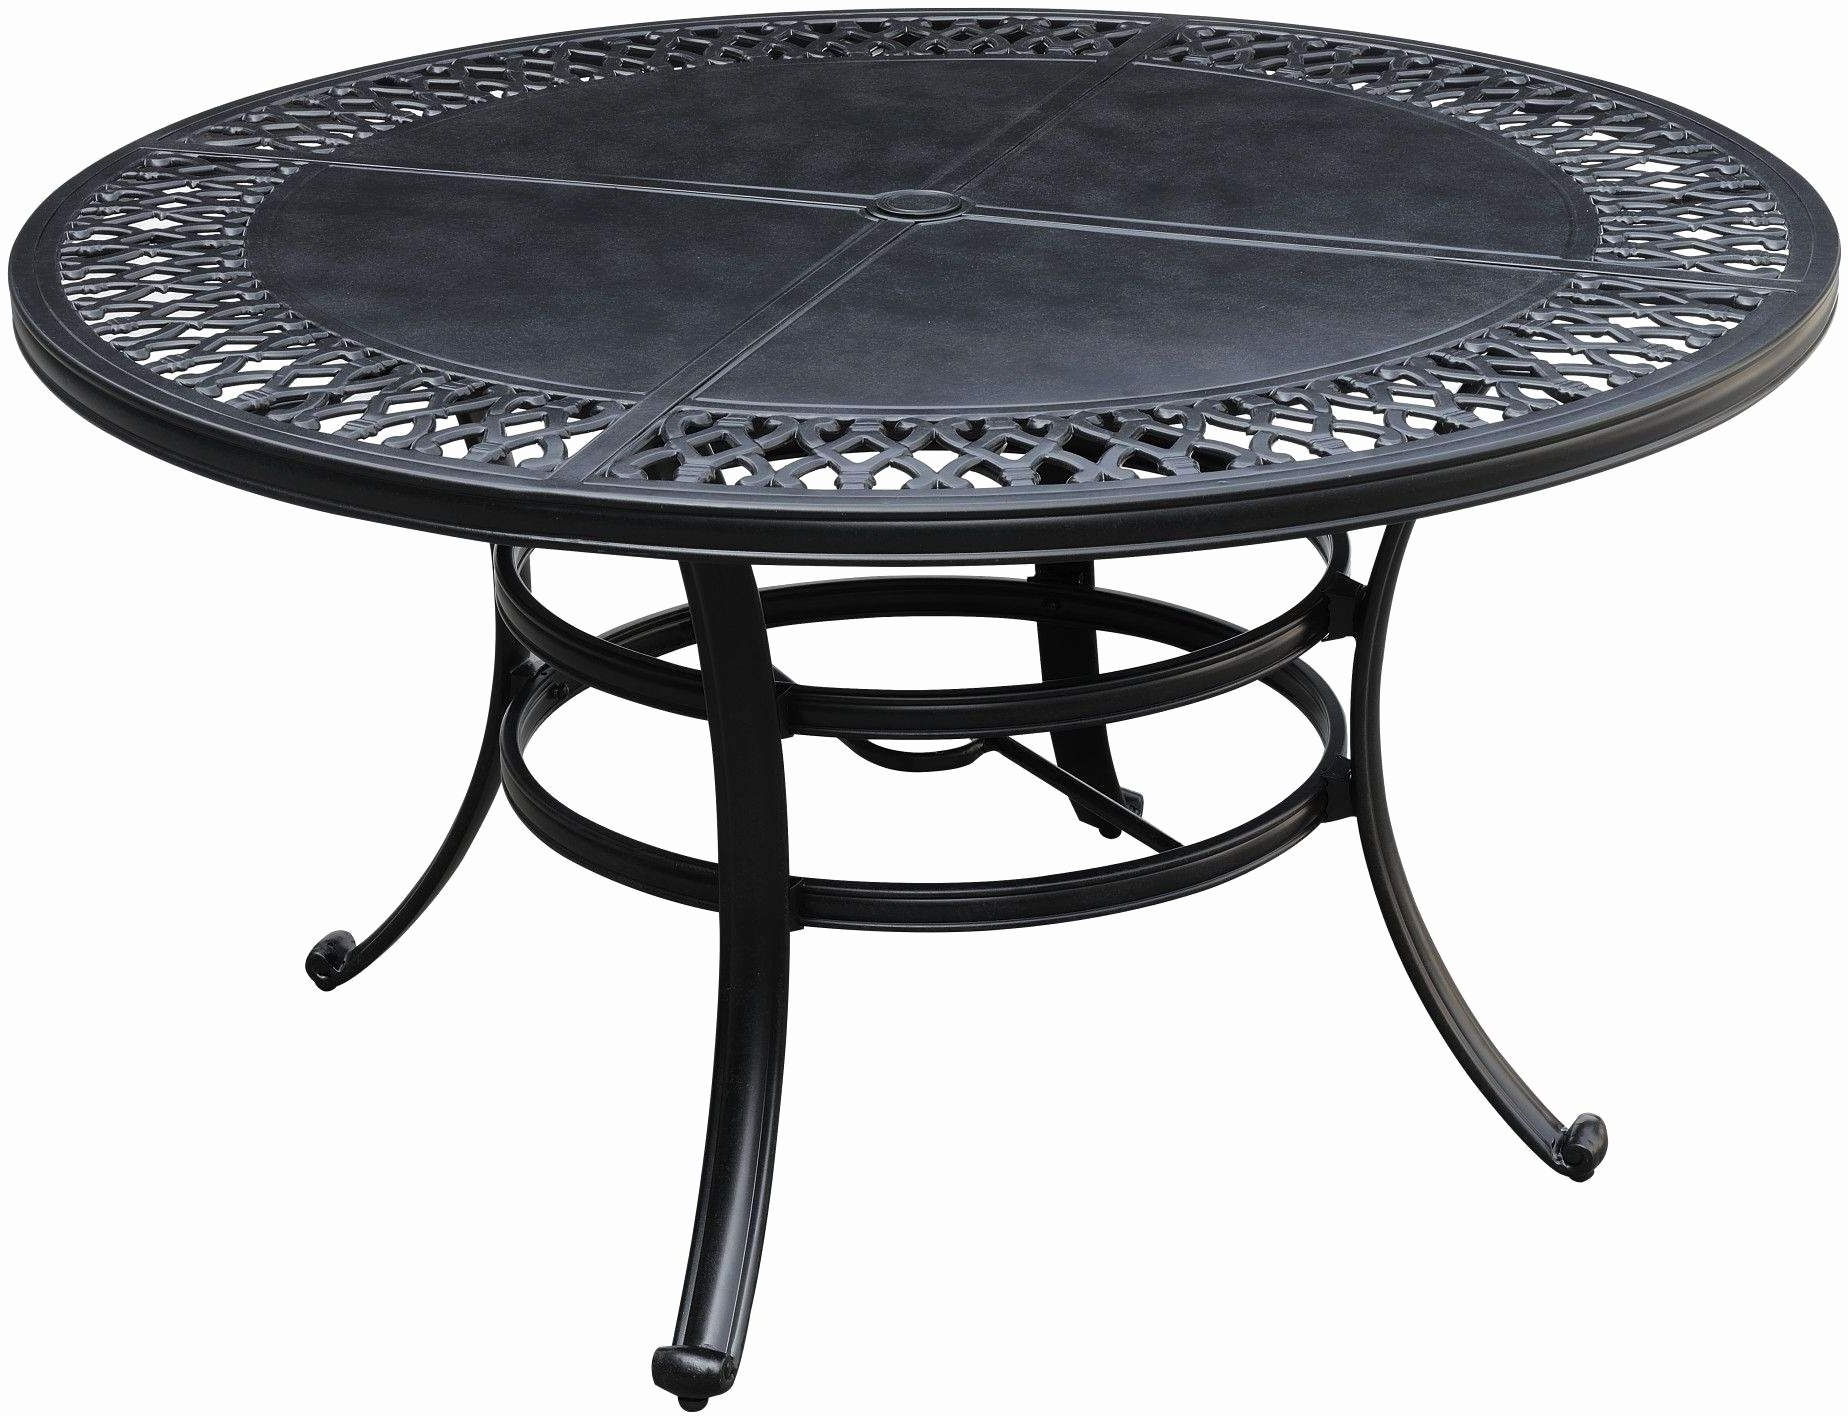 Patio Umbrella Stand Side Tables Regarding Famous Mosaic Outdoor Coffee Table Inspirational Mosaic Dining Table Patio (View 20 of 20)